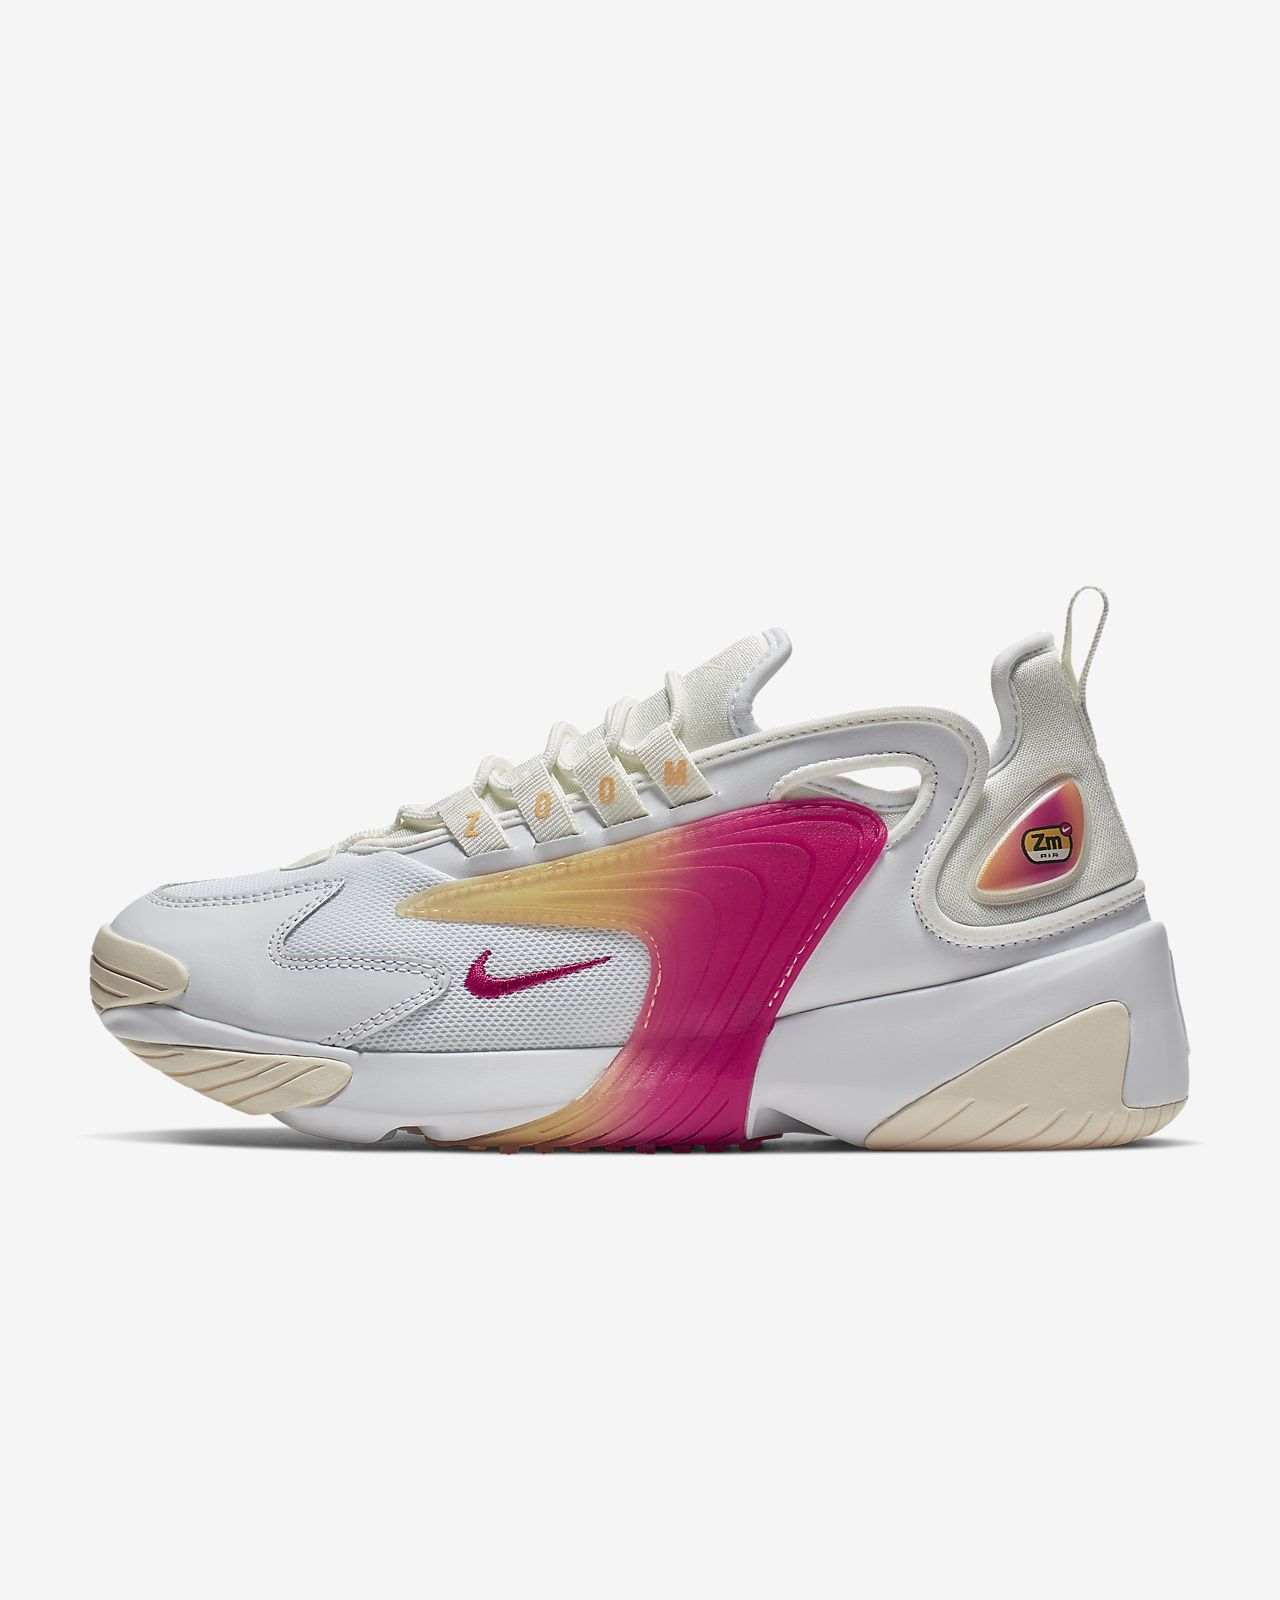 zoom chaussure nike enfant fille